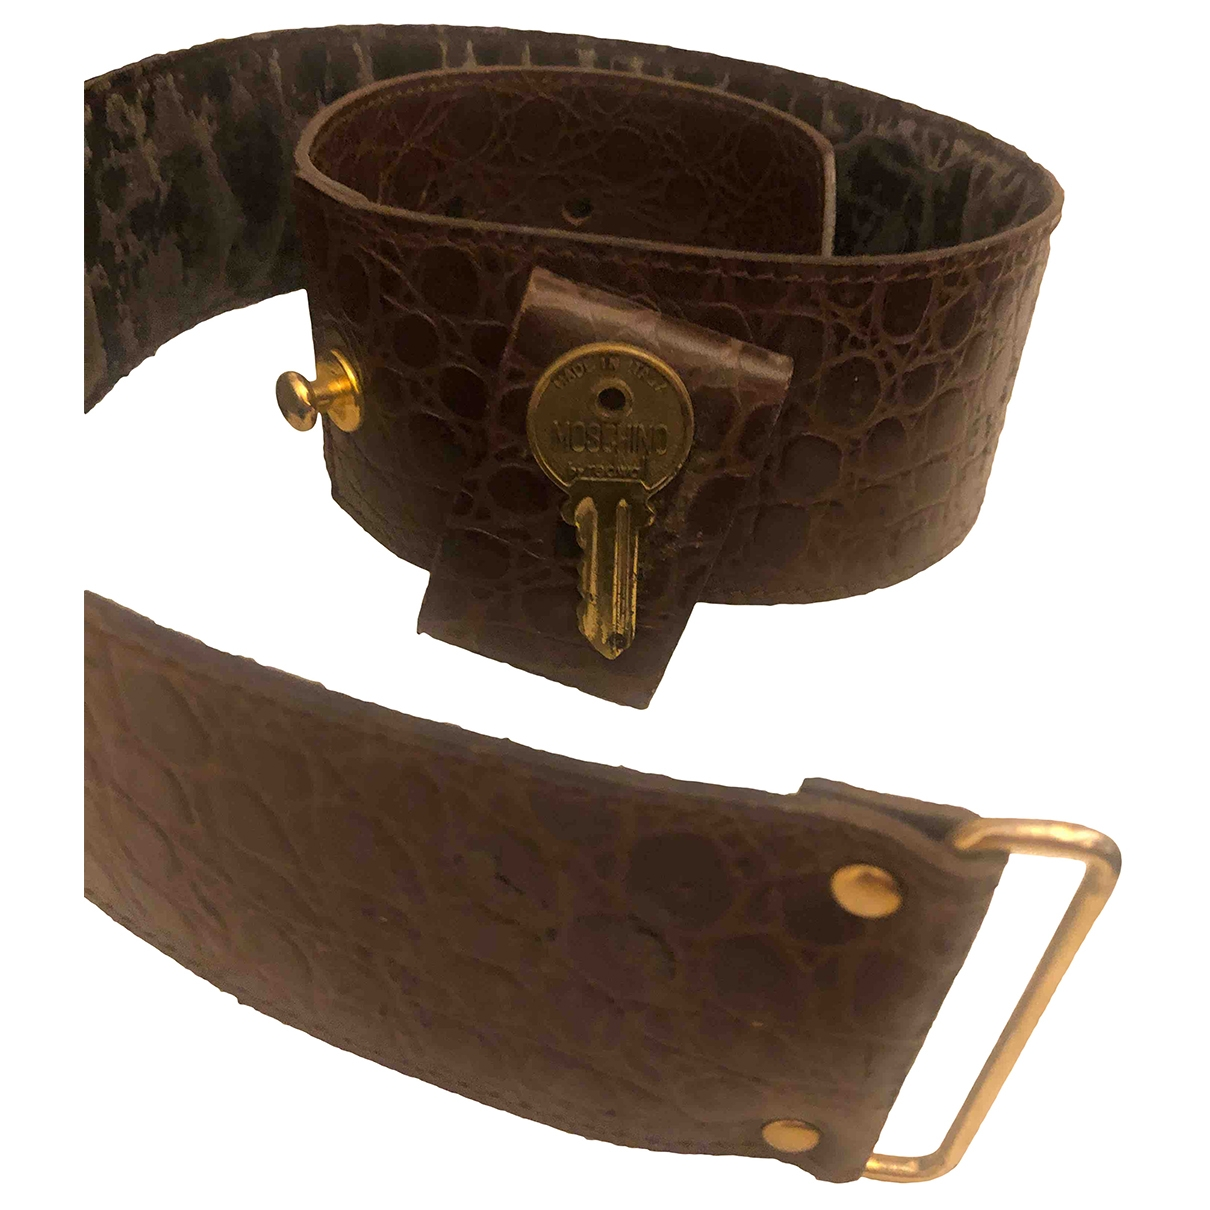 Moschino \N Brown Leather belt for Women 95 cm